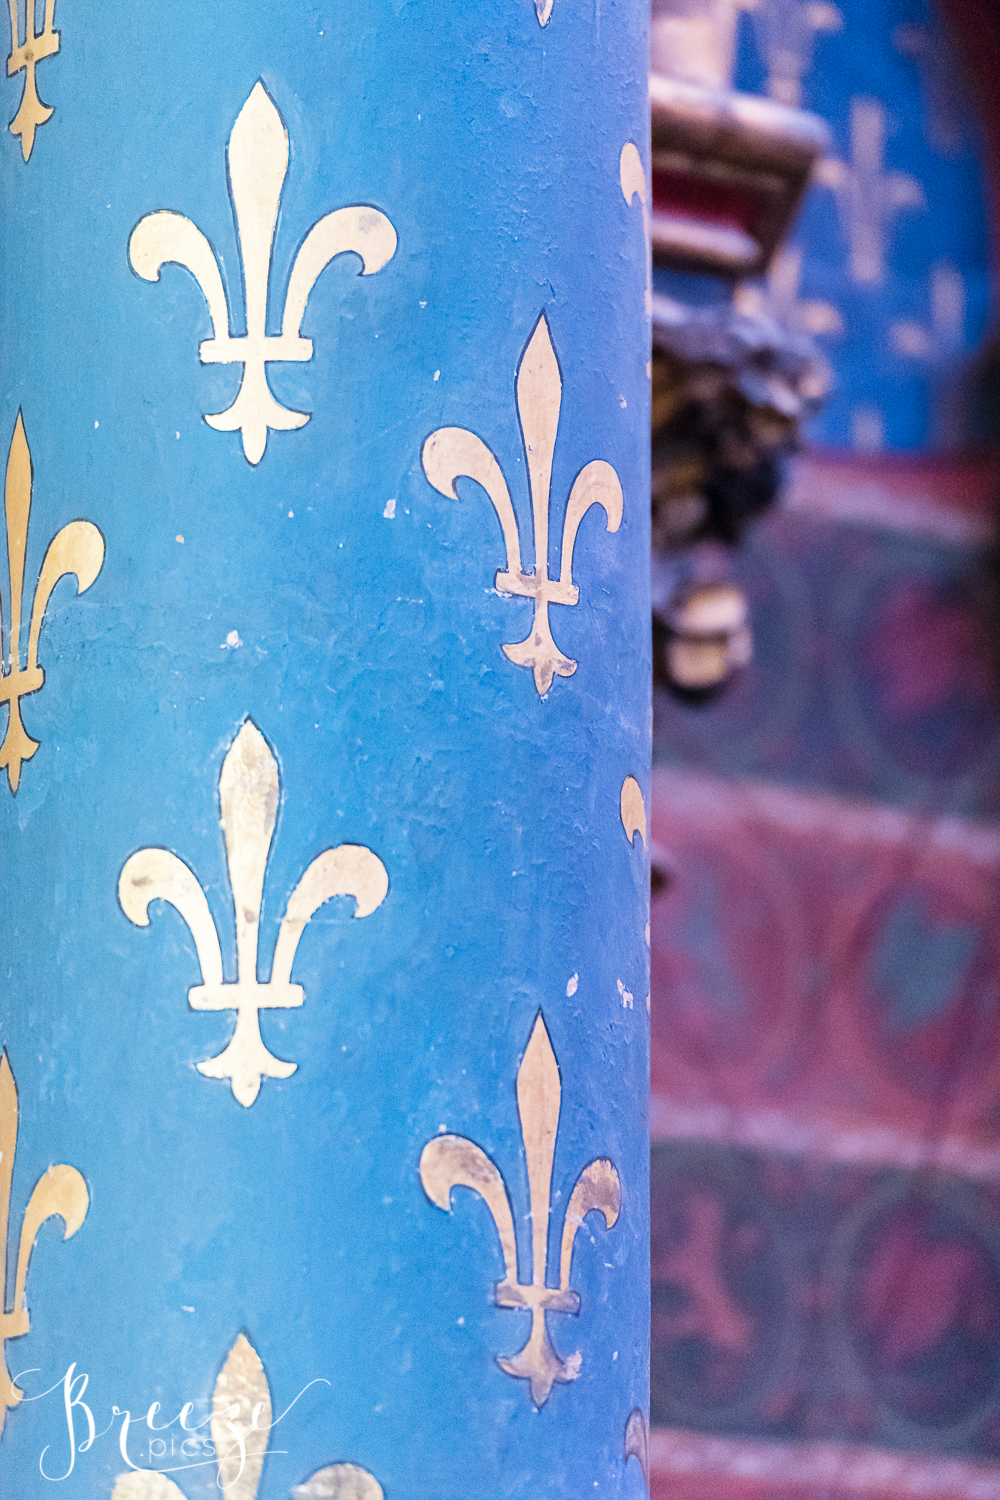 Sainte_Chapelle_gold_fleur_de-lis_on_blue_column.jpg